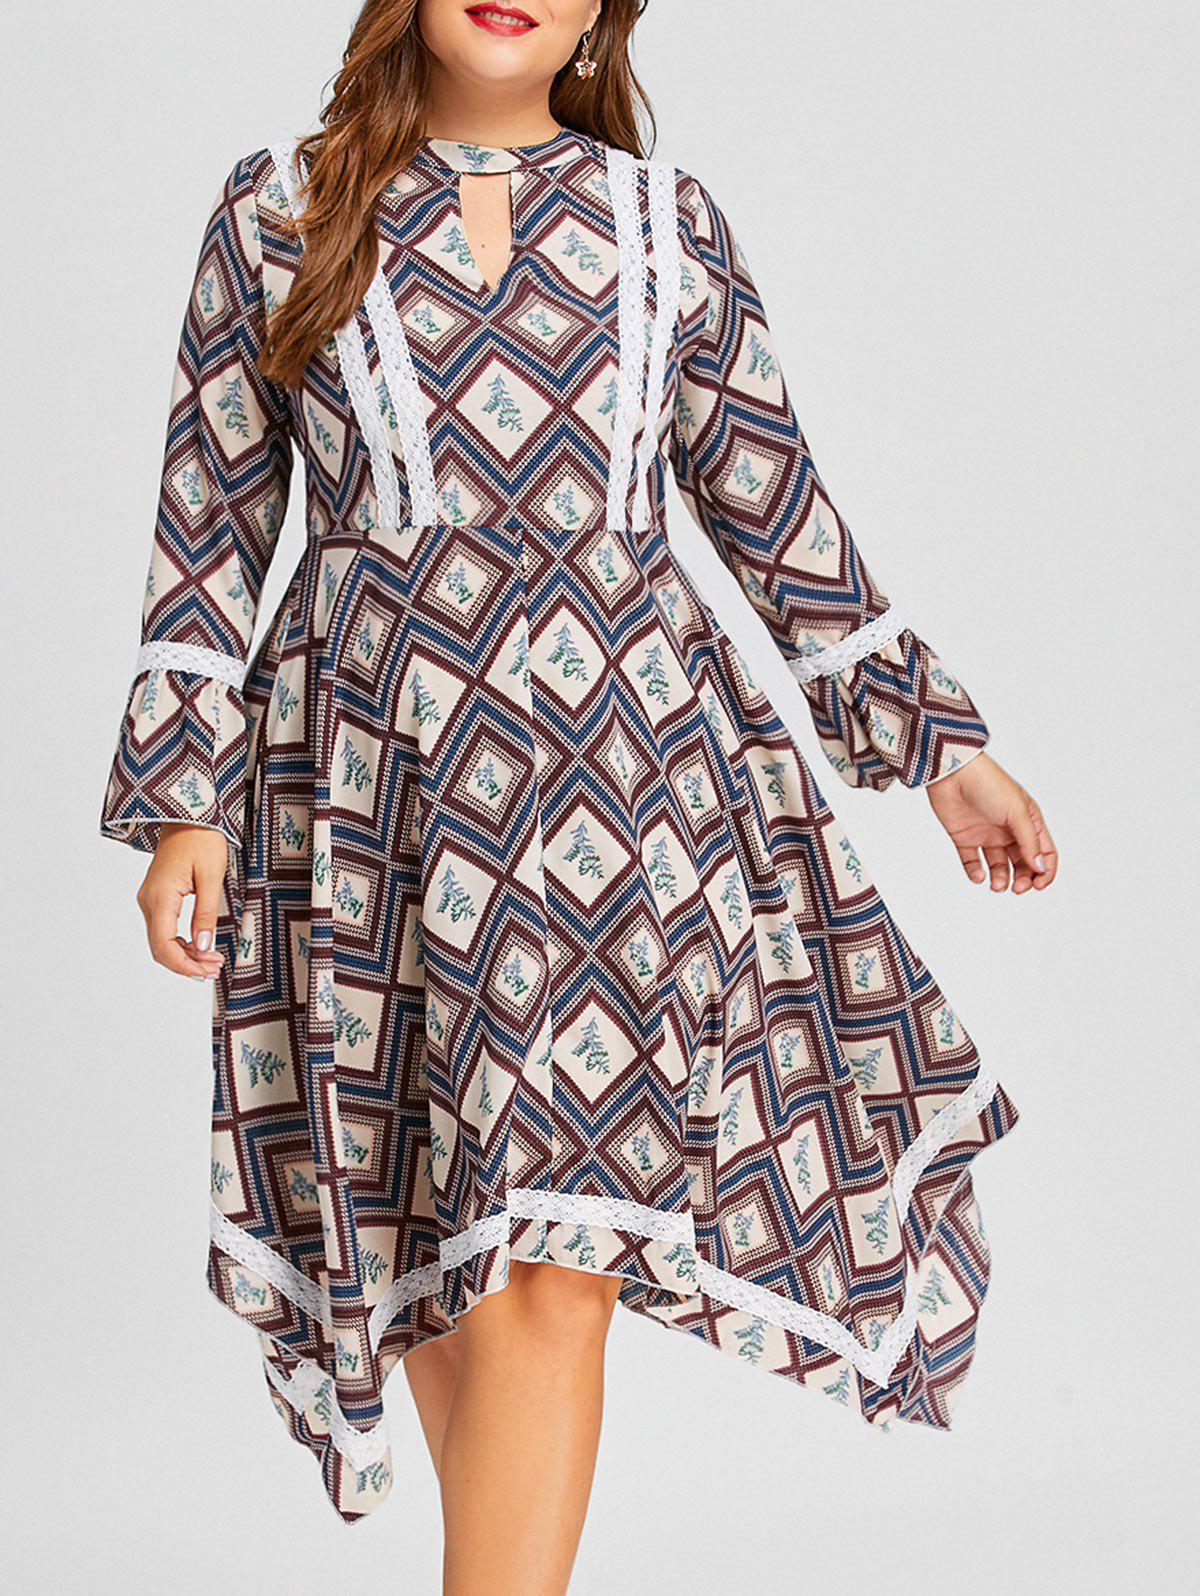 Rhombus Floral Plus Size Handkerchief DressWOMEN<br><br>Size: 5XL; Color: COLORMIX; Style: Casual; Material: Polyester; Silhouette: Asymmetrical; Dresses Length: Mid-Calf; Neckline: Keyhole Neck; Sleeve Length: Long Sleeves; Pattern Type: Floral,Geometric; With Belt: No; Season: Fall,Spring; Weight: 0.3900kg; Package Contents: 1 x Dress;